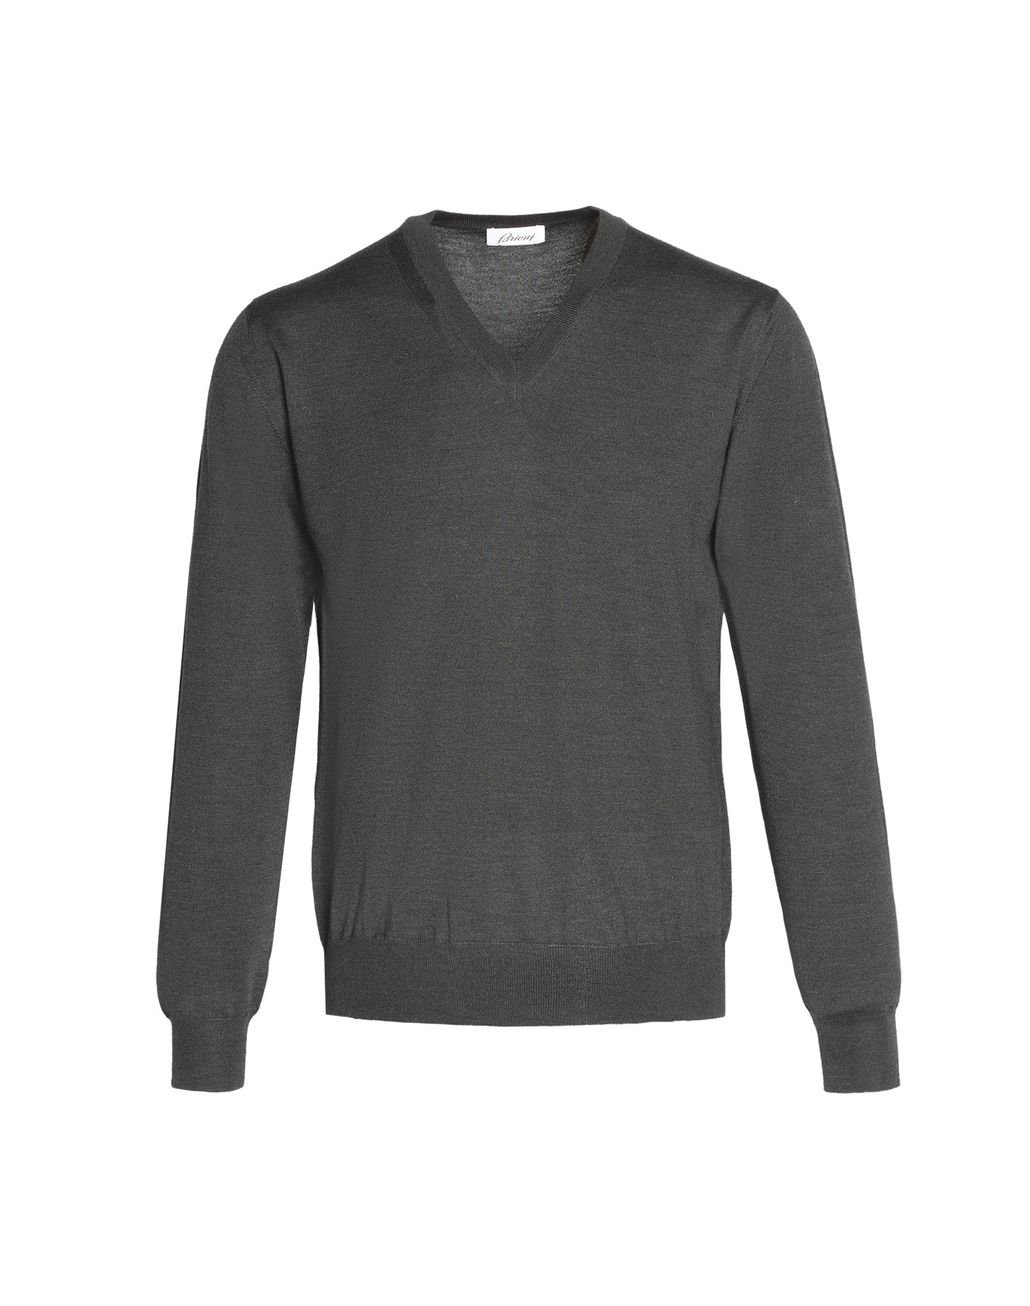 BRIONI 'Essential' Grey V-Neck Sweater Knitwear [*** pickupInStoreShippingNotGuaranteed_info ***] f